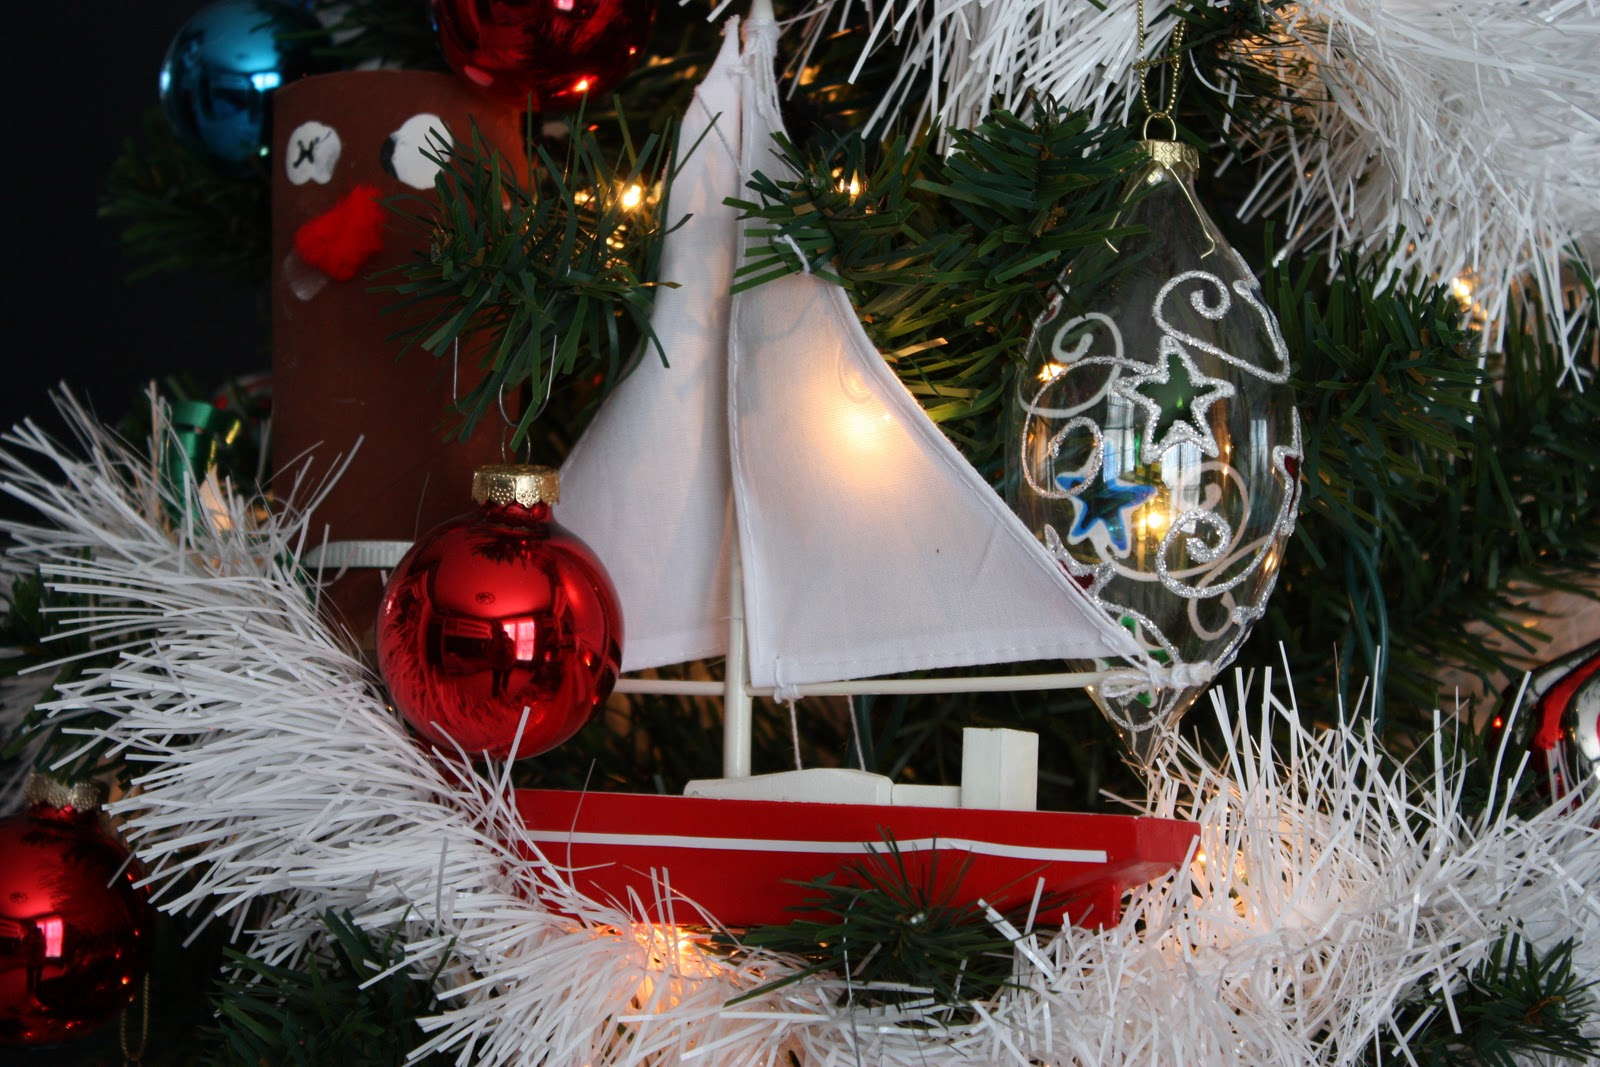 Nautical tree ornaments - They Decorated Their Tree With Hand Made Ornaments From Years Past